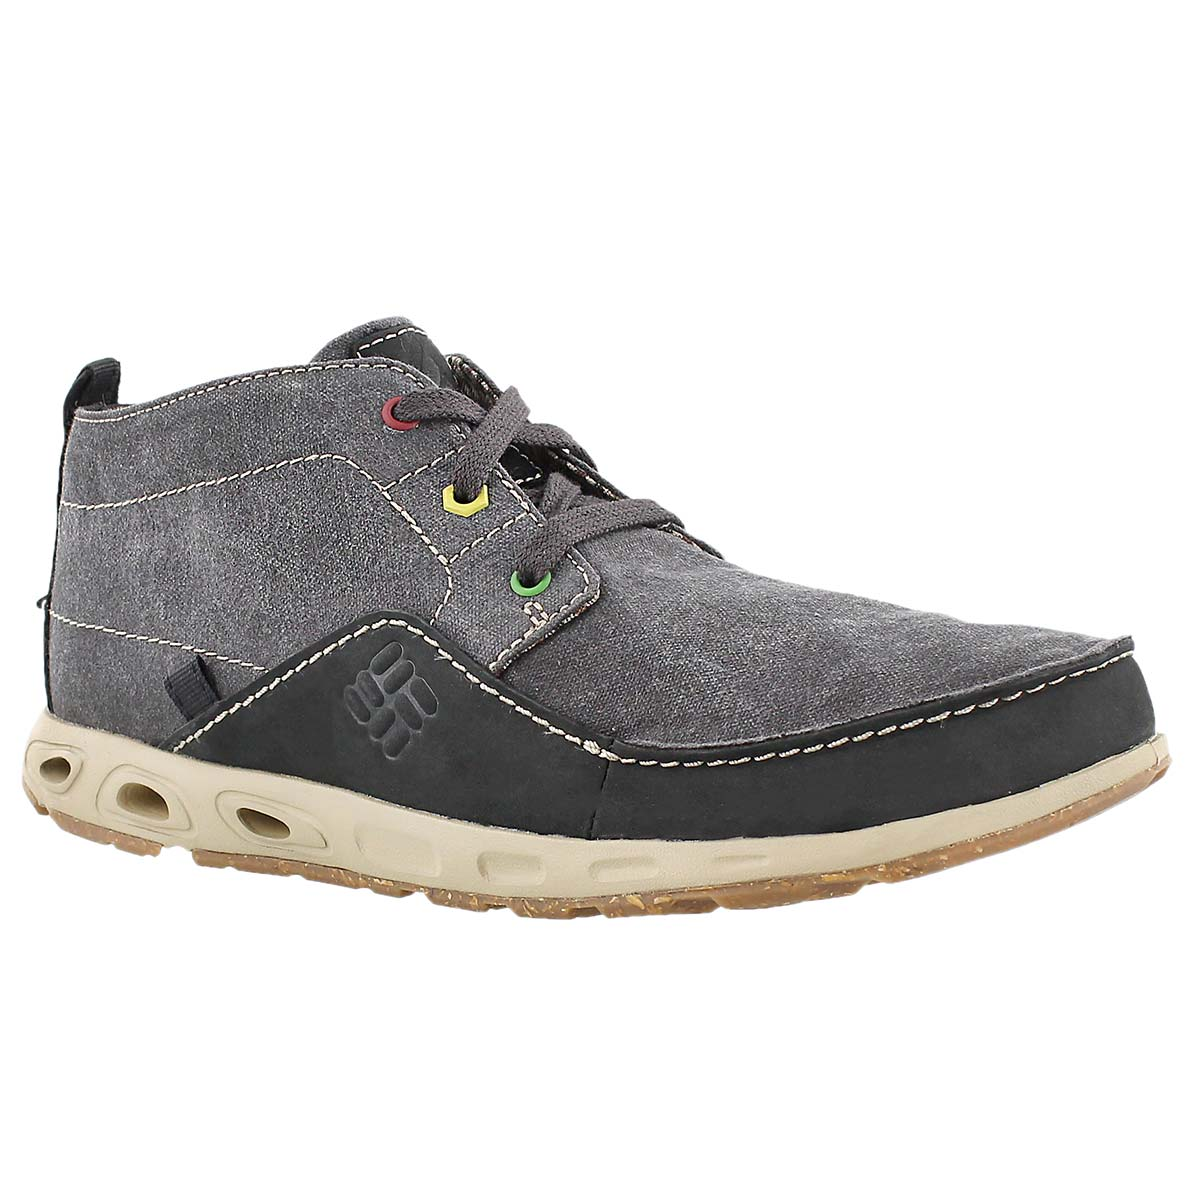 Mns Sunvent Chukka shark casual boot